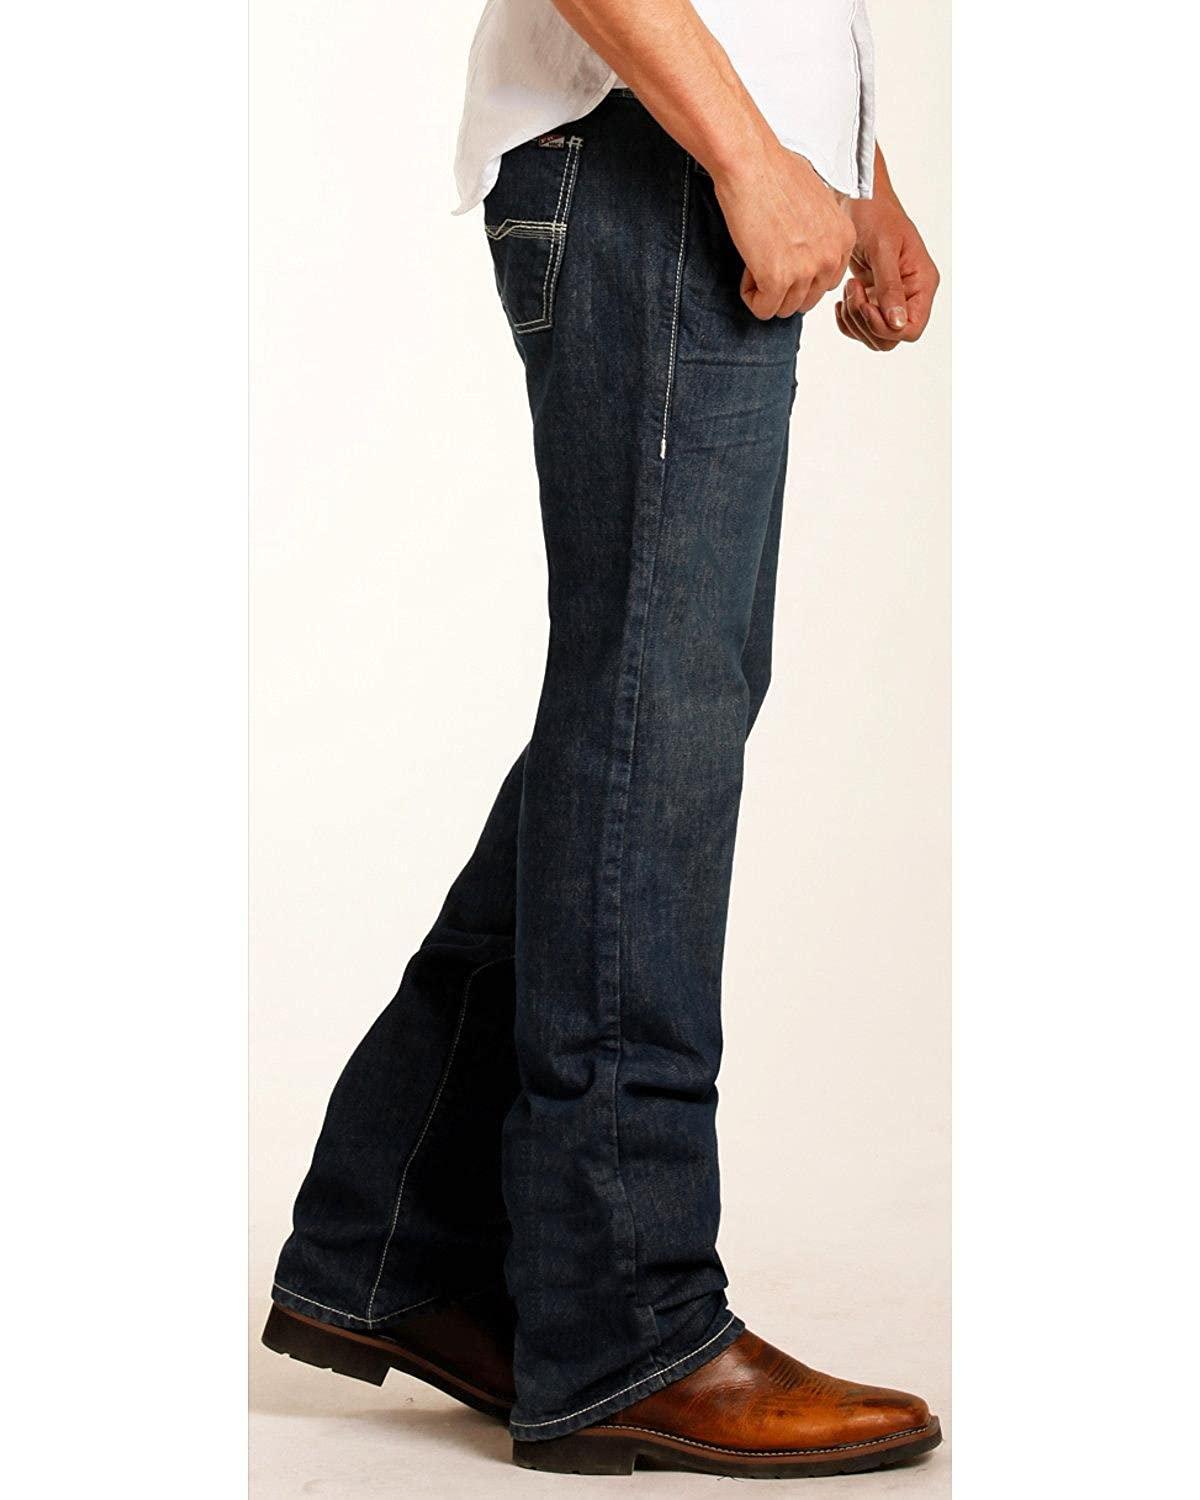 Rock /& Roll Cowboy Mens and Pistol Flame Resistant Jeans Straight Leg Blue 36W x 36L